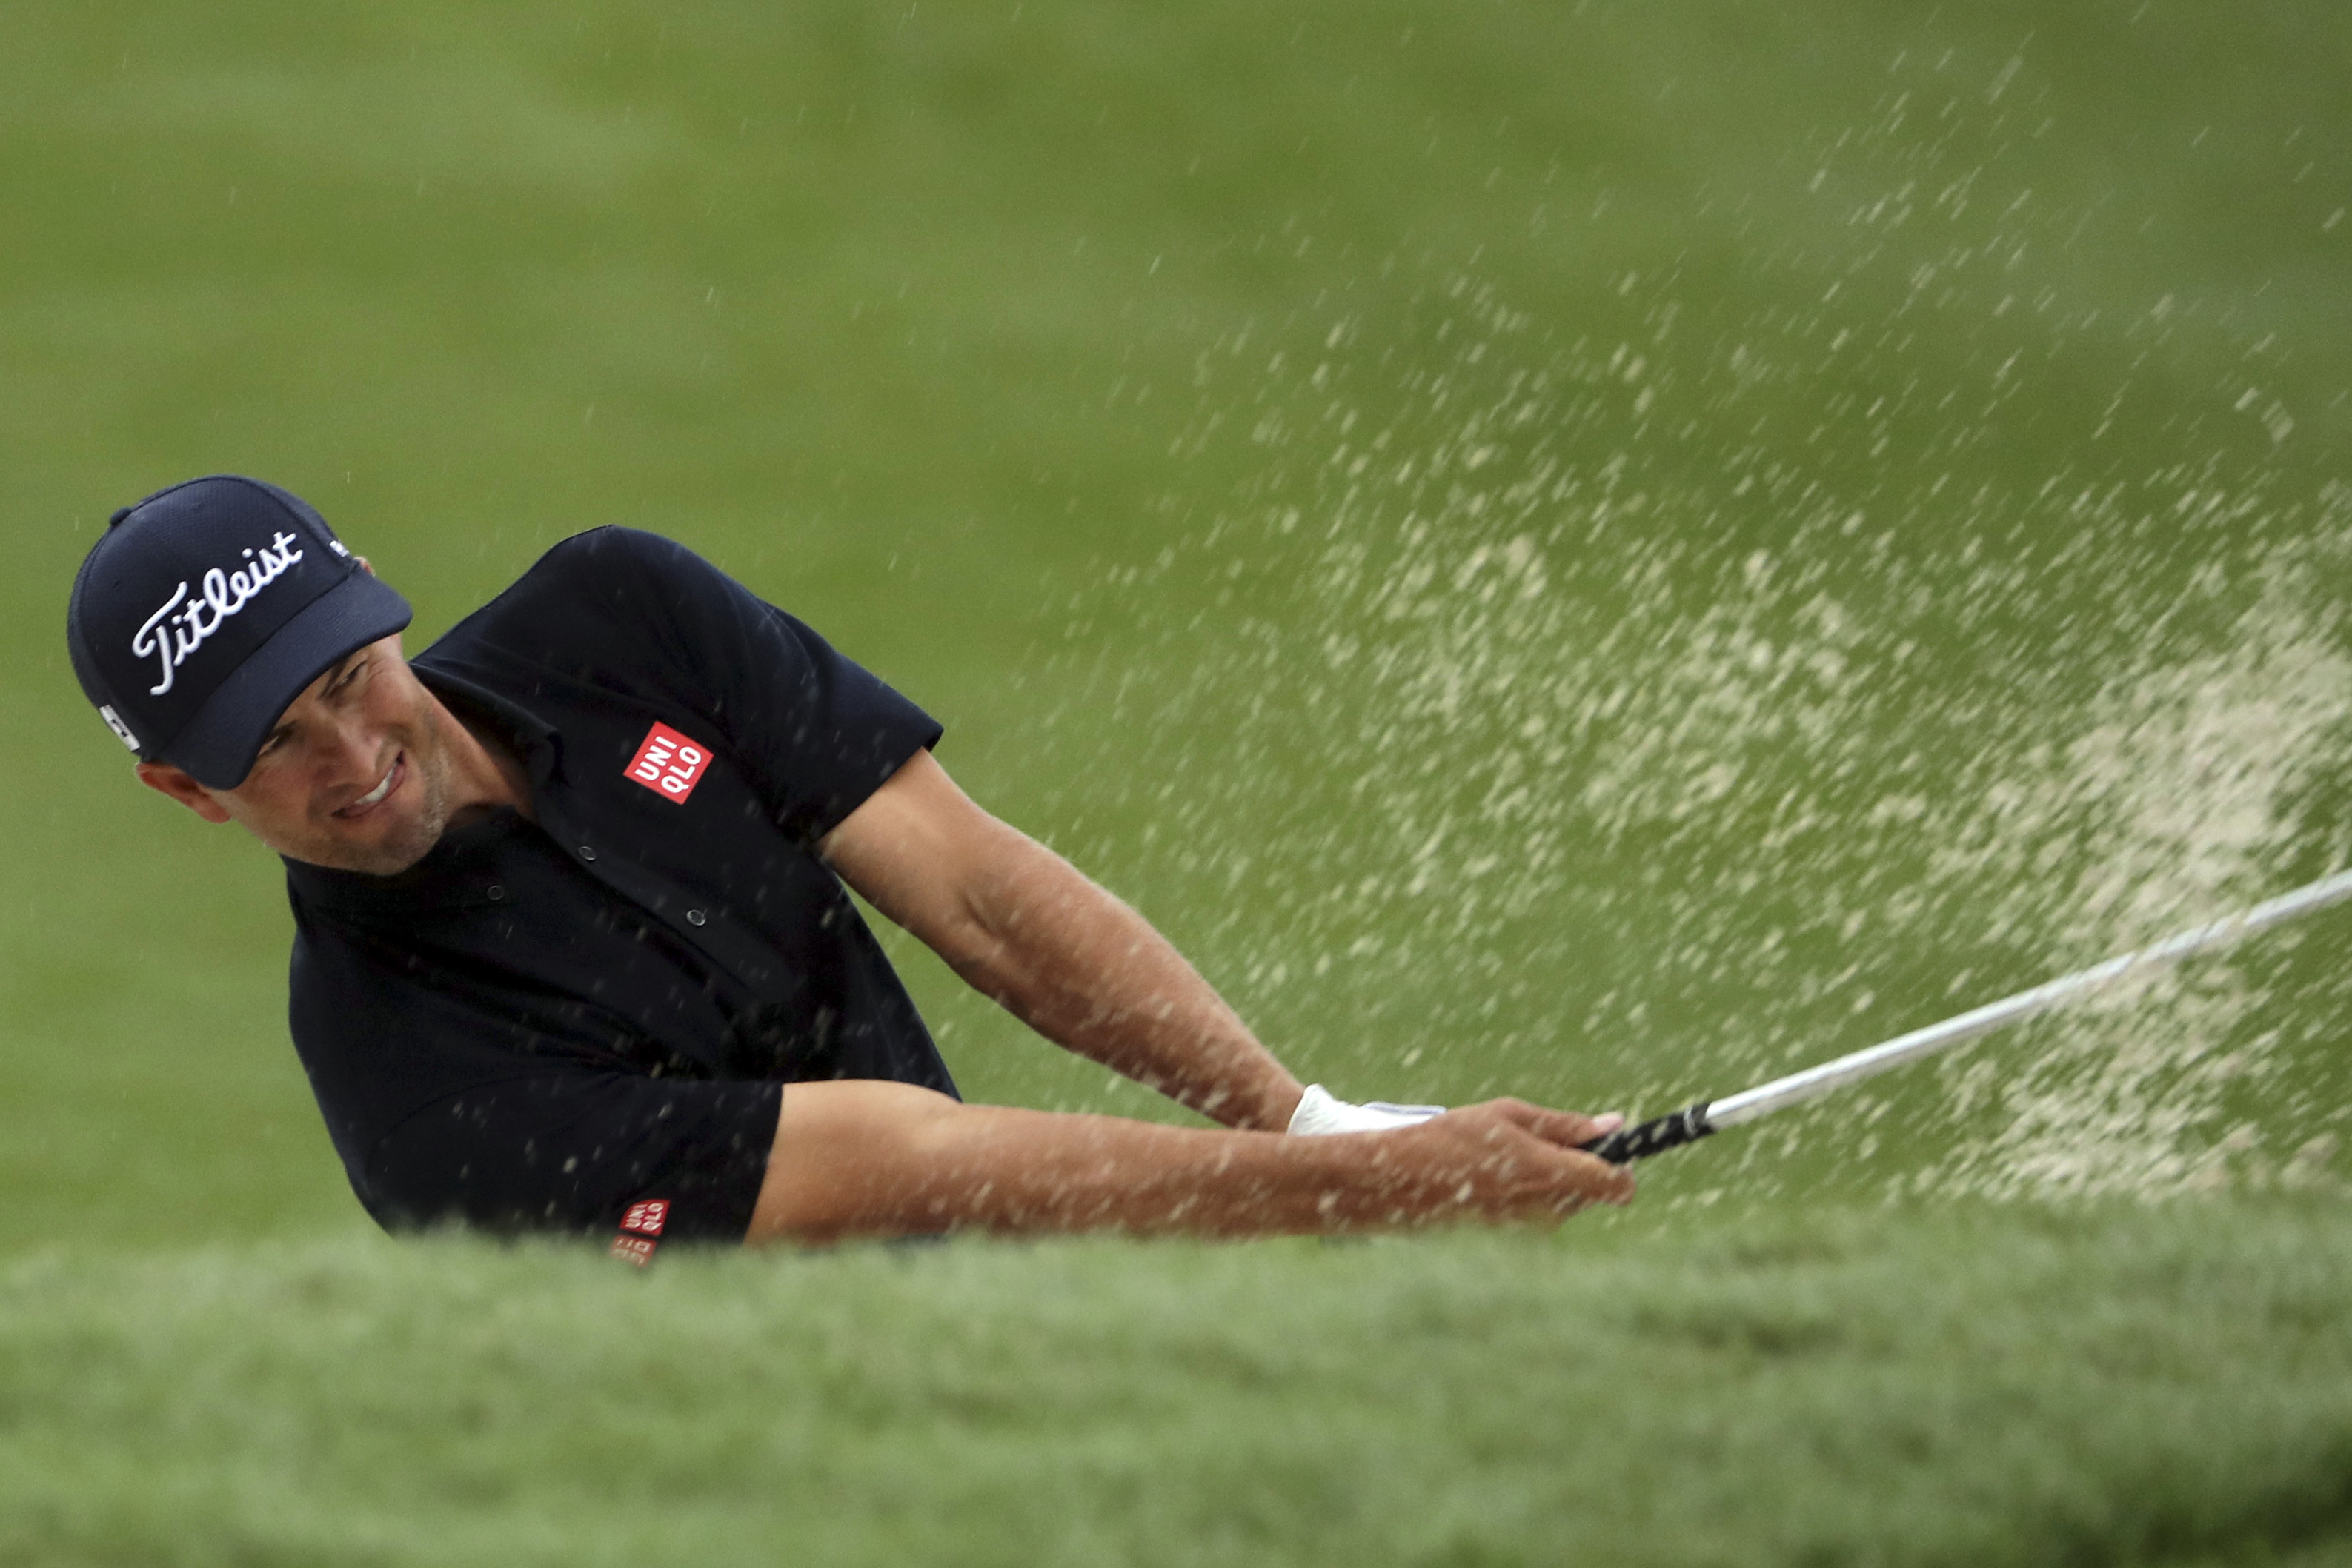 Adam Scott of Australia hits the ball from a sand bank during the WGC-HSBC Champions golf tournament at the Sheshan International Golf Club in Shanghai, China, Thursday, Oct. 27, 2016. (AP Photo/Ng Han Guan)